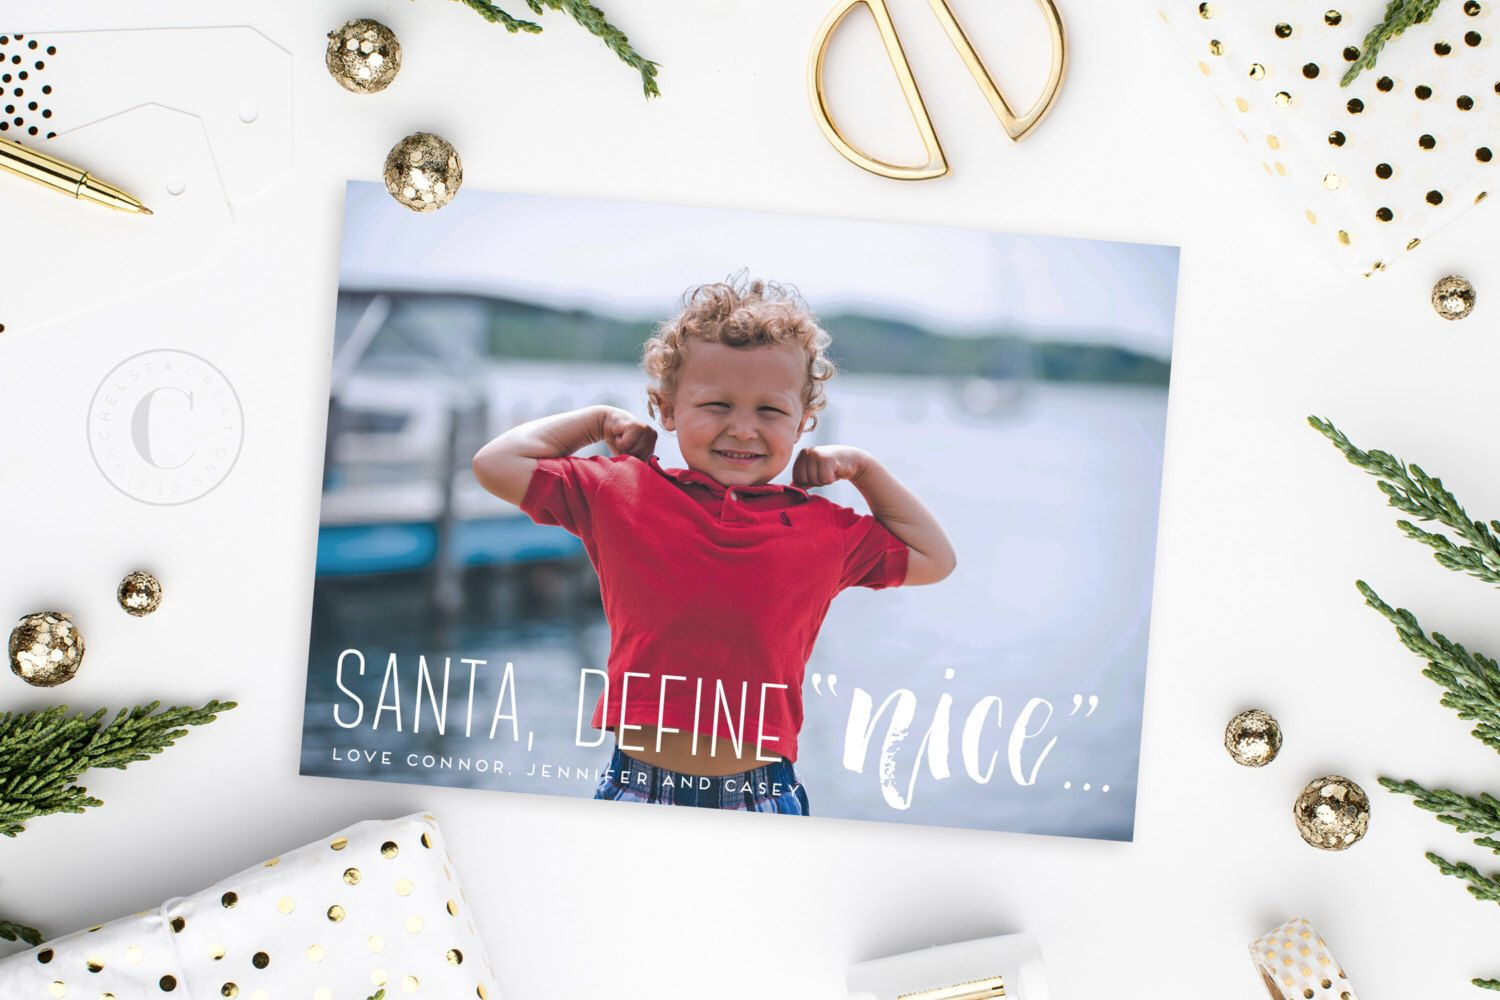 Define nice holiday card from chelseacreations design pinterest define nice holiday card from chelseacreations holiday cards kristyandbryce Gallery